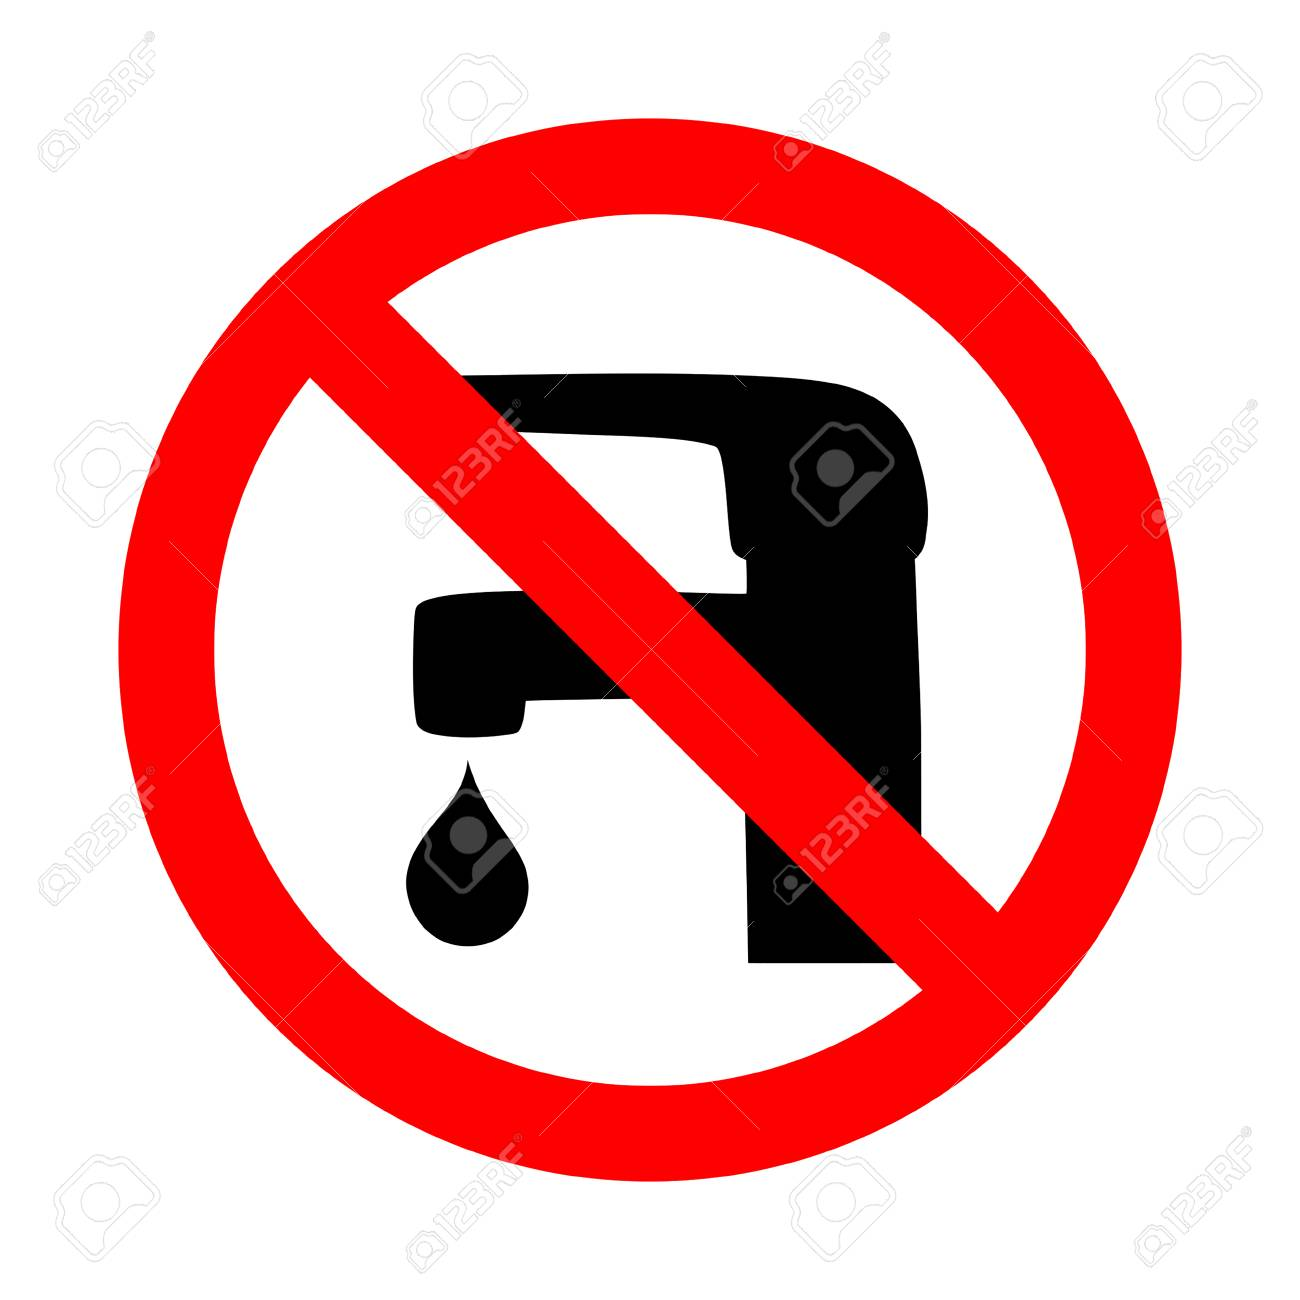 Save water sign faucet icon. Simple flat vector illustration. - 104668538